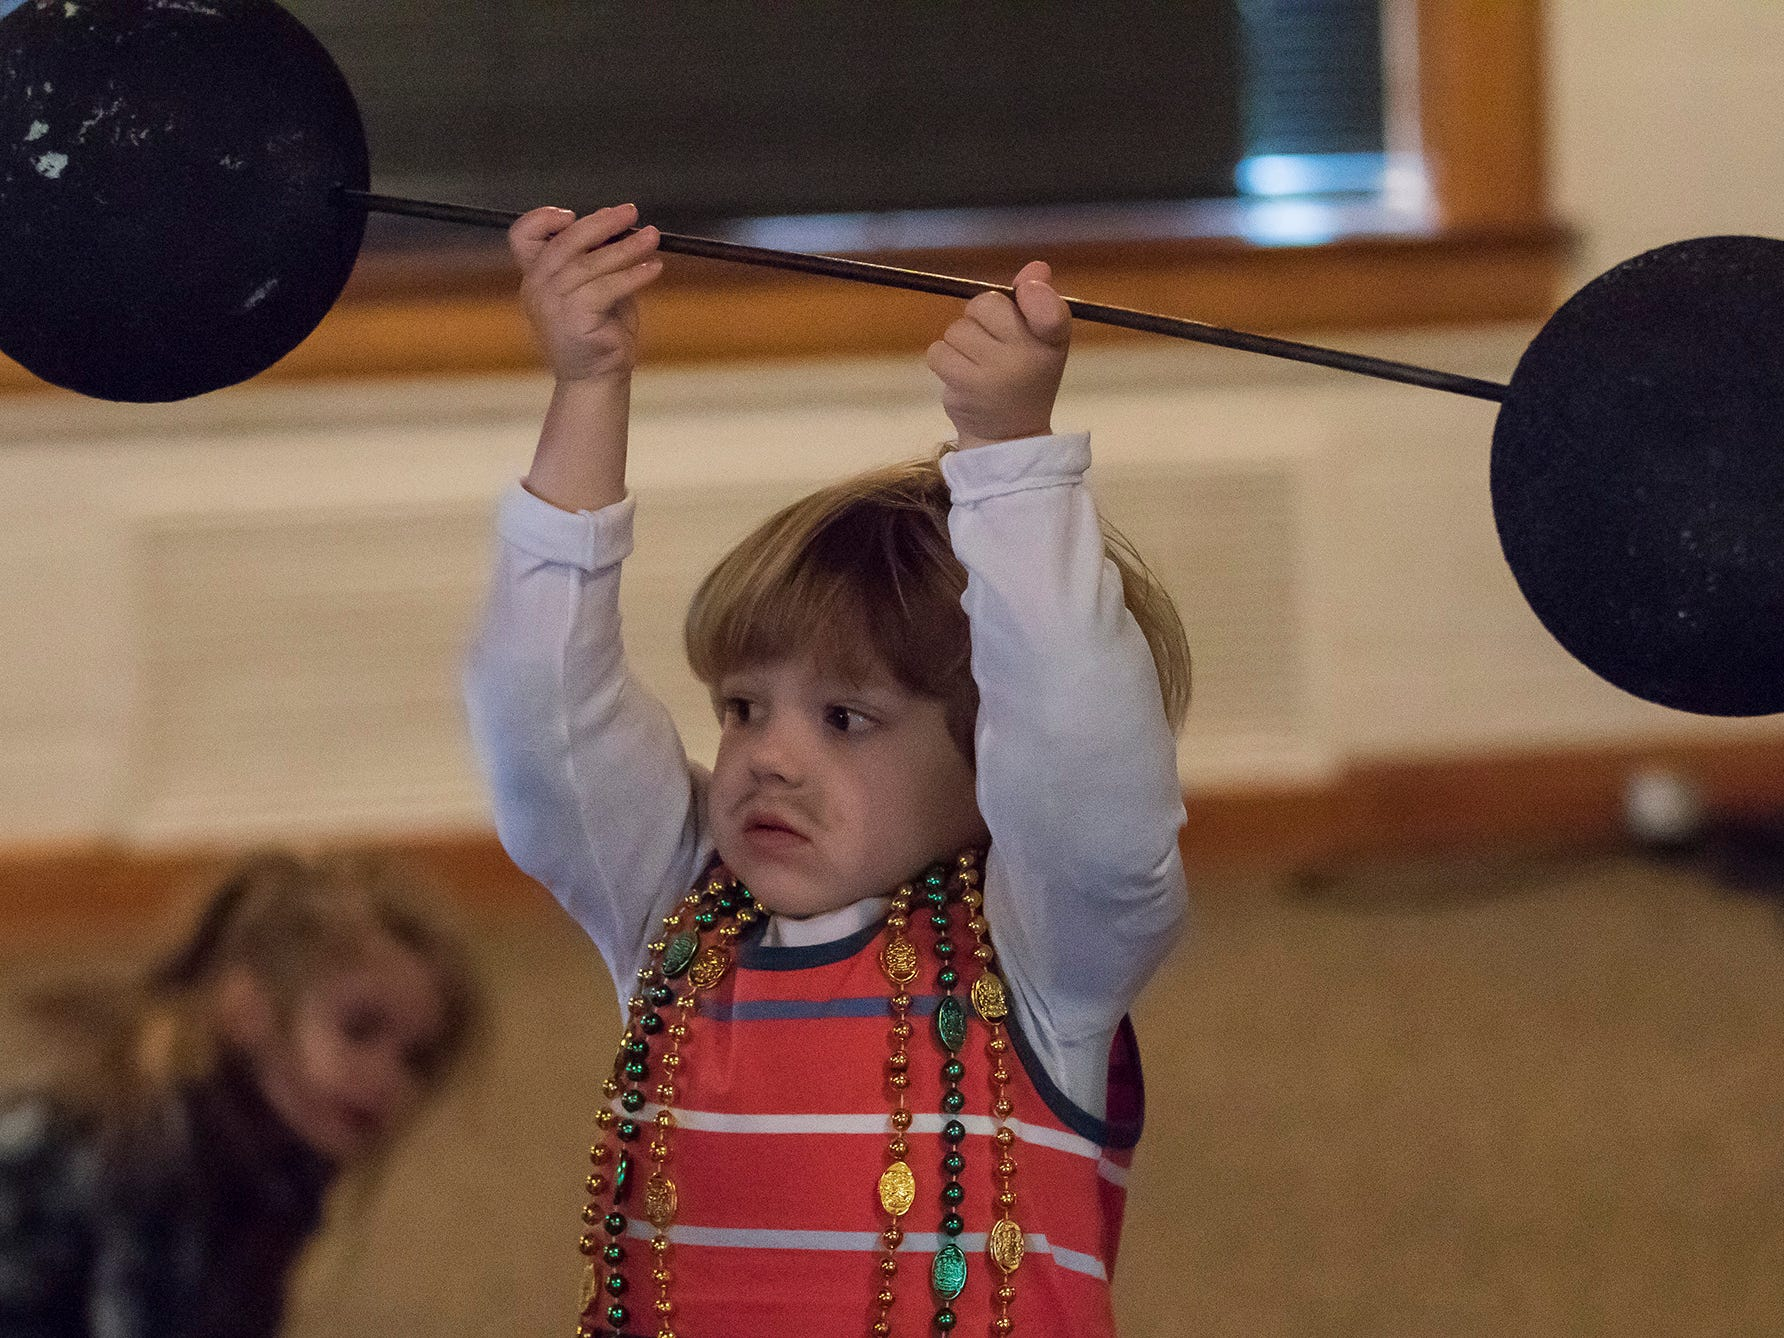 Dressed as a stongman Mason Boyd, 3, lifts his barbell over his head as he waits to partake in the Krewe of Munchkins parade at St. Paul's Day School in Monroe, La. on Feb. 11.